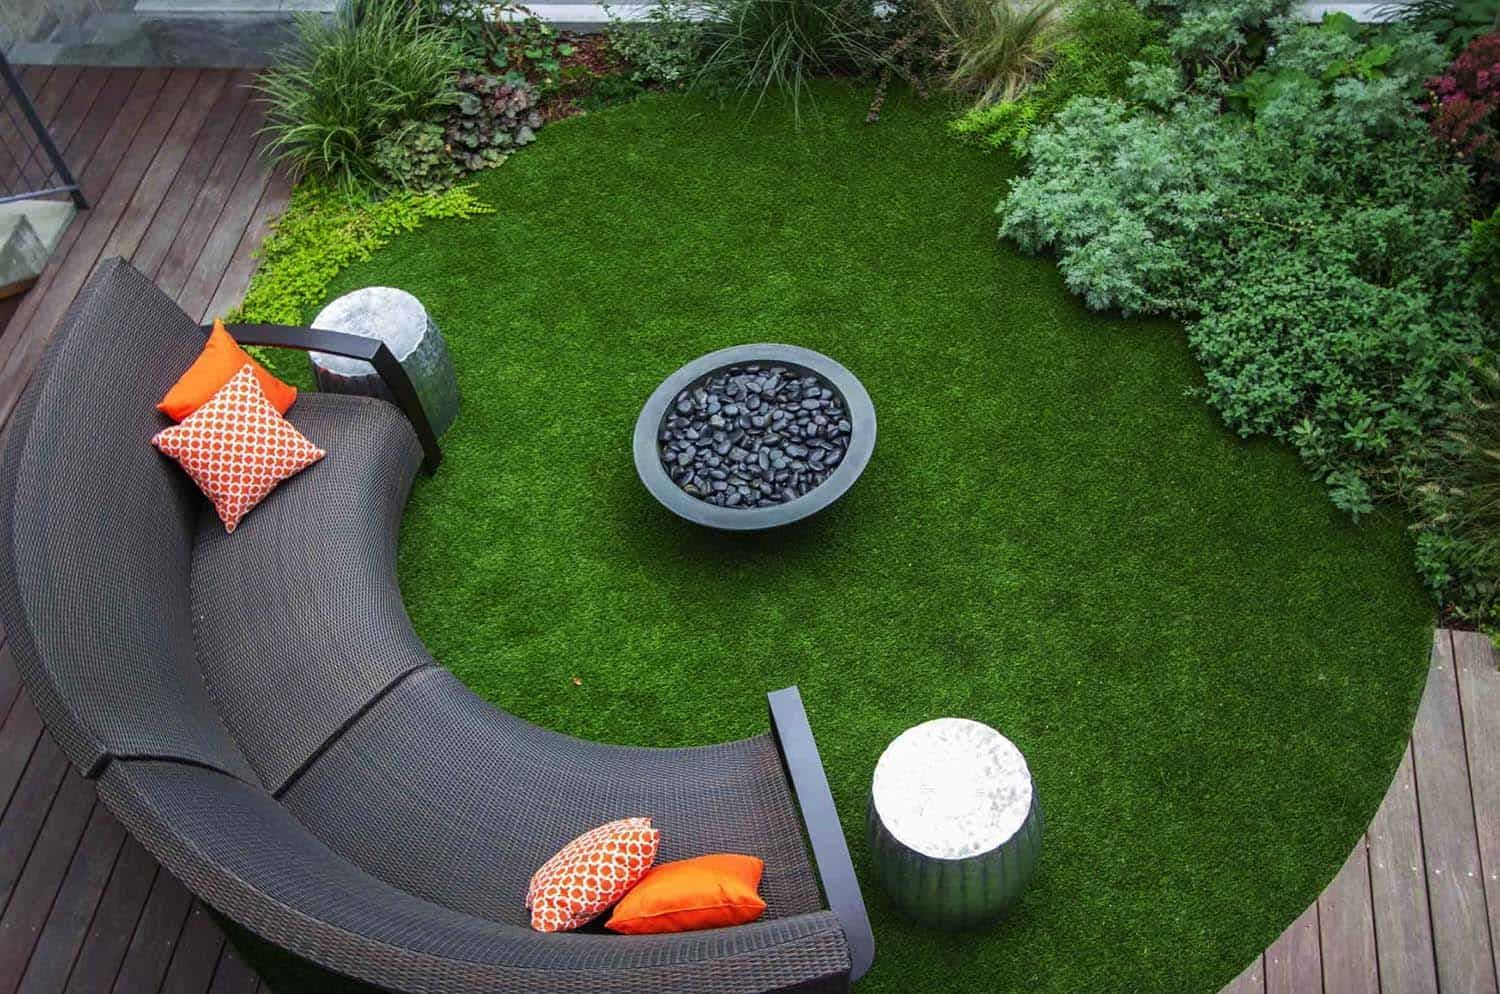 28 Inspiring Fire Pit Ideas To Create A Fabulous Backyard Oasis Modern Landscaping Backyard Patio Designs Fire Pit Seating Area